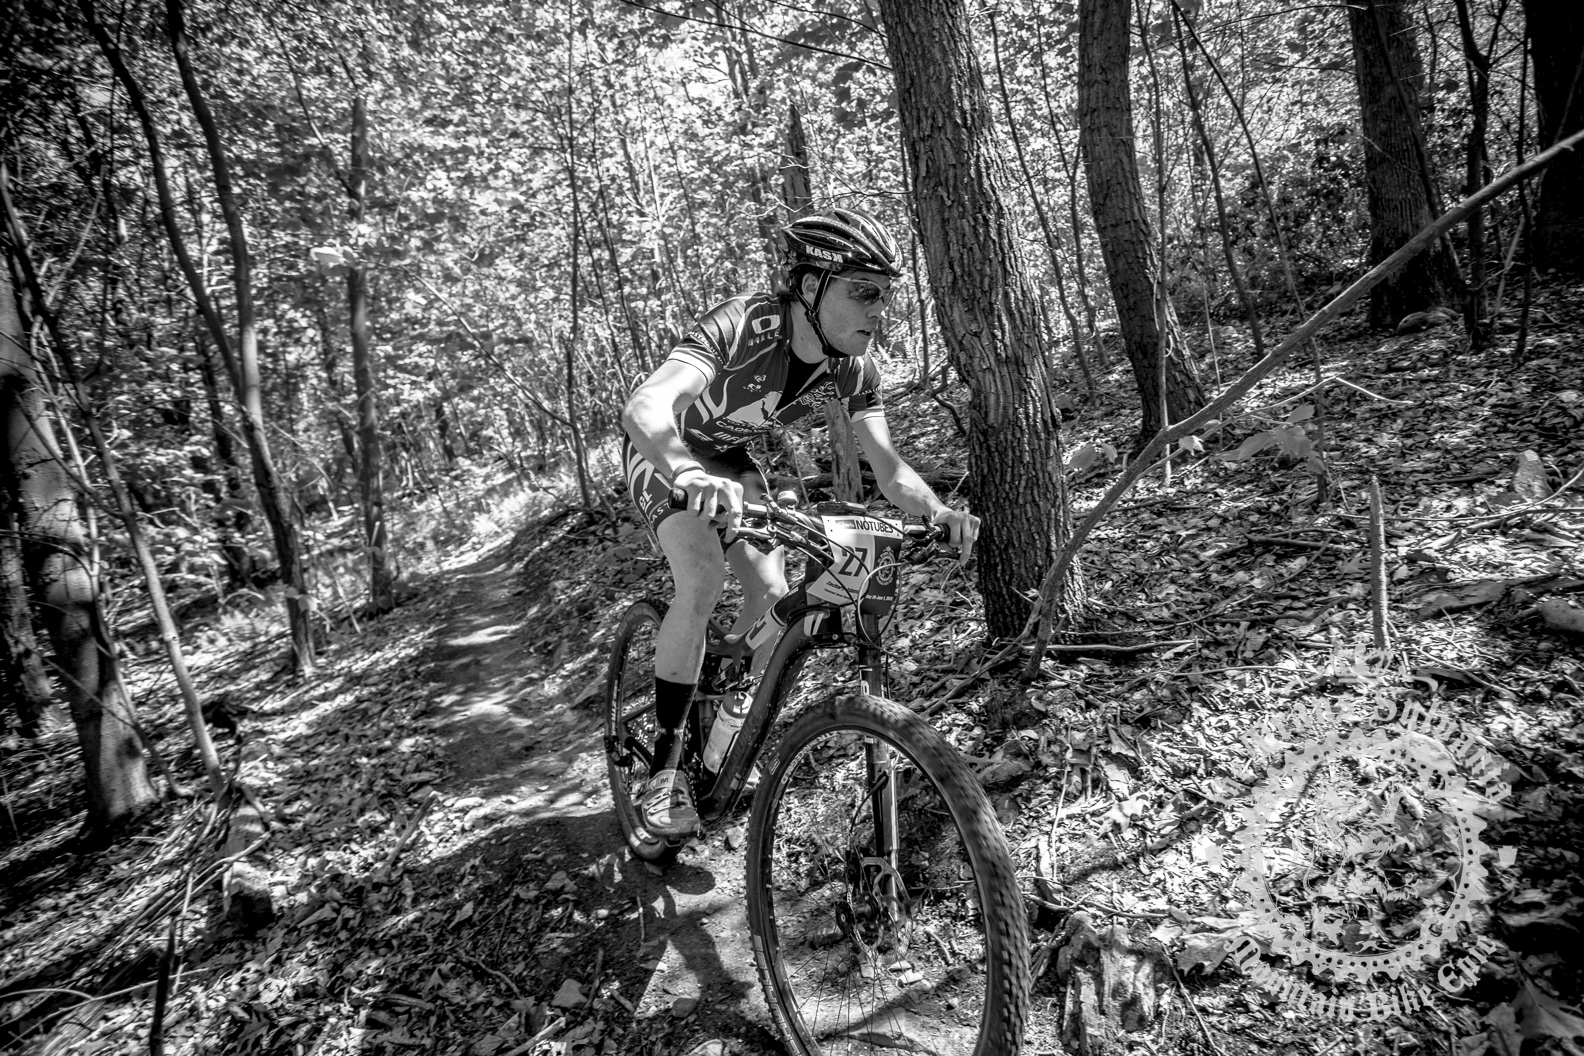 Zach Adams attacking in the Prologue Enduro section